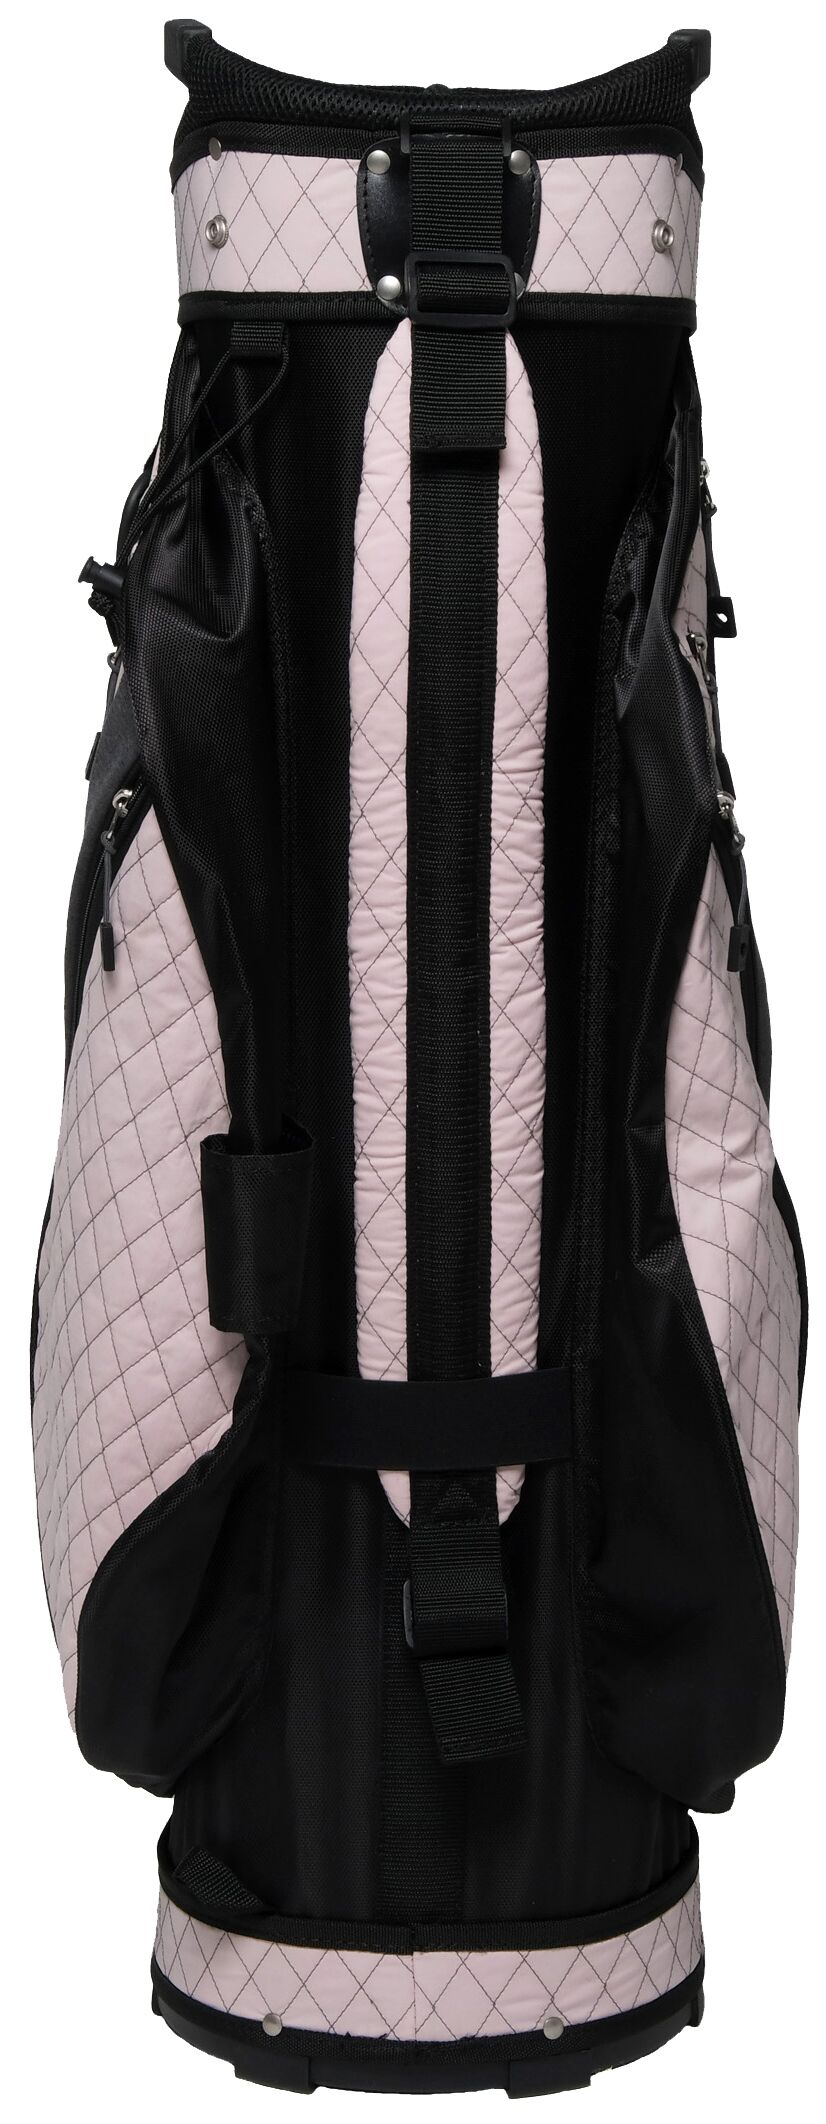 ROSE GOLD QUILT Women's Golf Bag